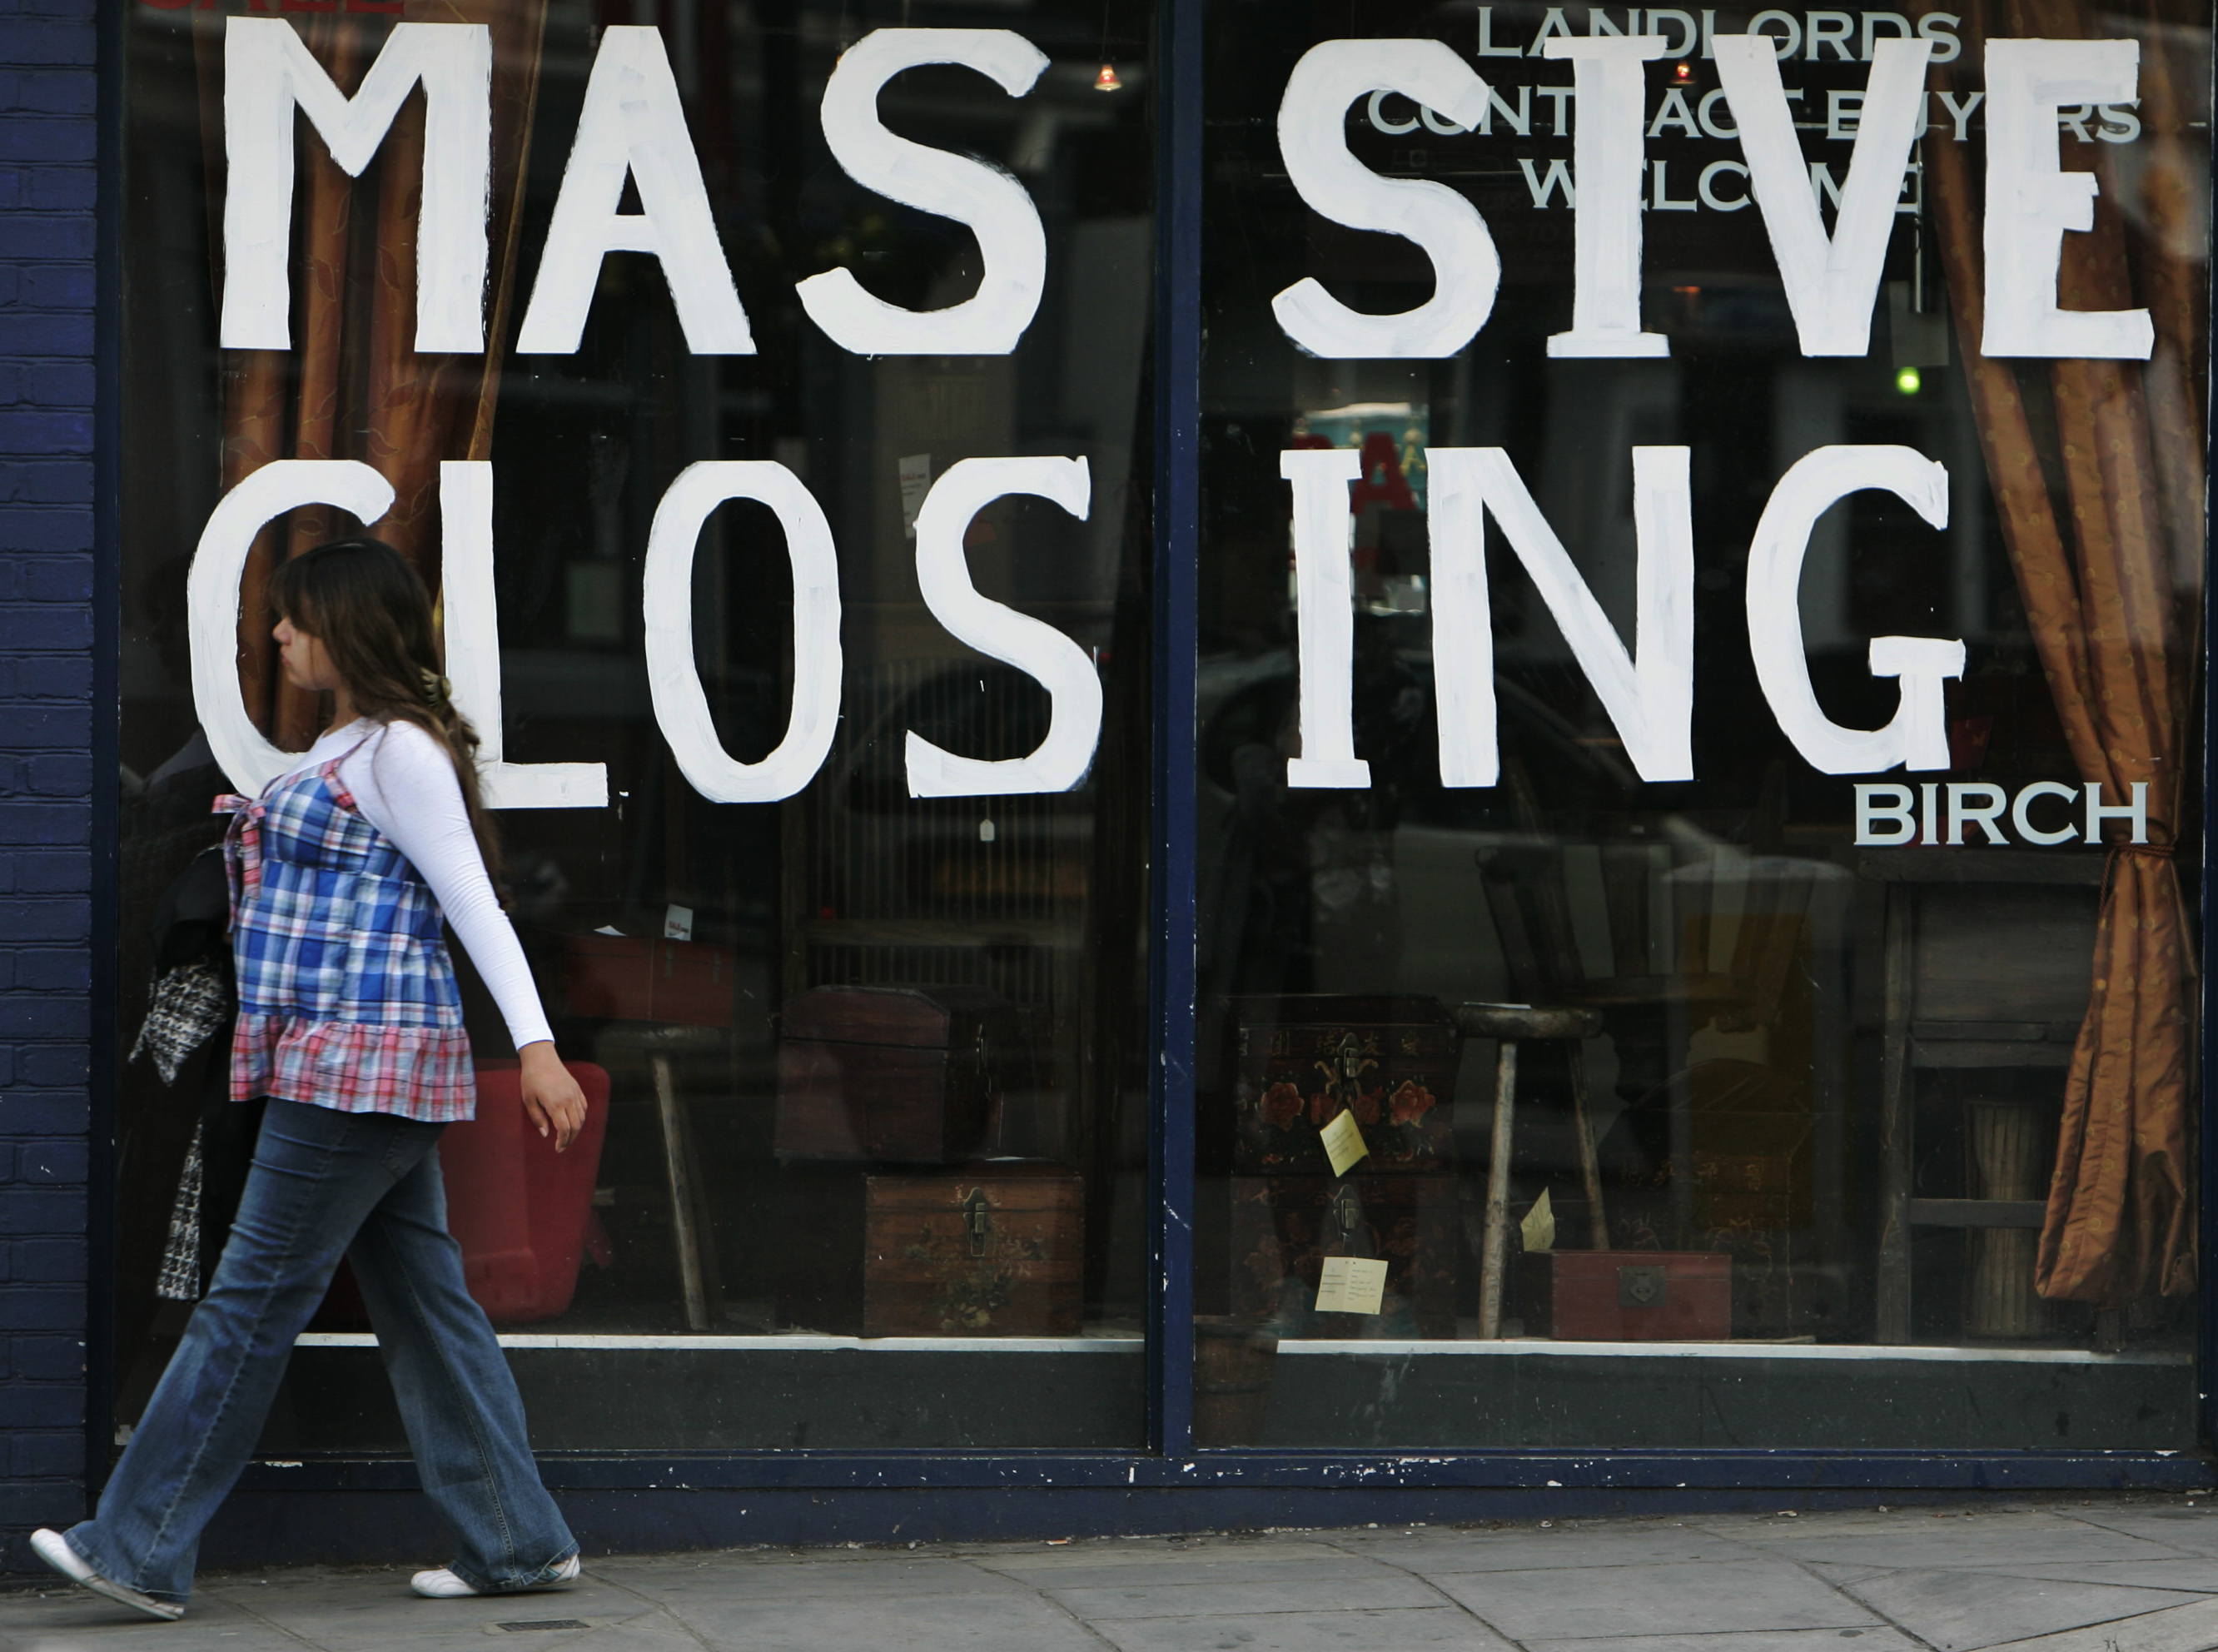 A woman walks past a shop with closing down sales signs, in west London, Friday May 1, 2009. Company insolvencies in England and Wales jumped 56 percent in the first quarter compared to a year ago, while individual insolvencies rose 19 percent, the government said Friday in its latest count of casualties in the recession. The Insolvency Service said there were 4,941 liquidations in the first quarter, up 7.1 percent from the previous quarter. In the 12 months through the first quarter, about 1 of every 130 companies went into liquidation, it added.The 29,774 individual insolvencies reported was up 1.6 from the previous quarter. (AP Photo/Lefteris Pitarakis)